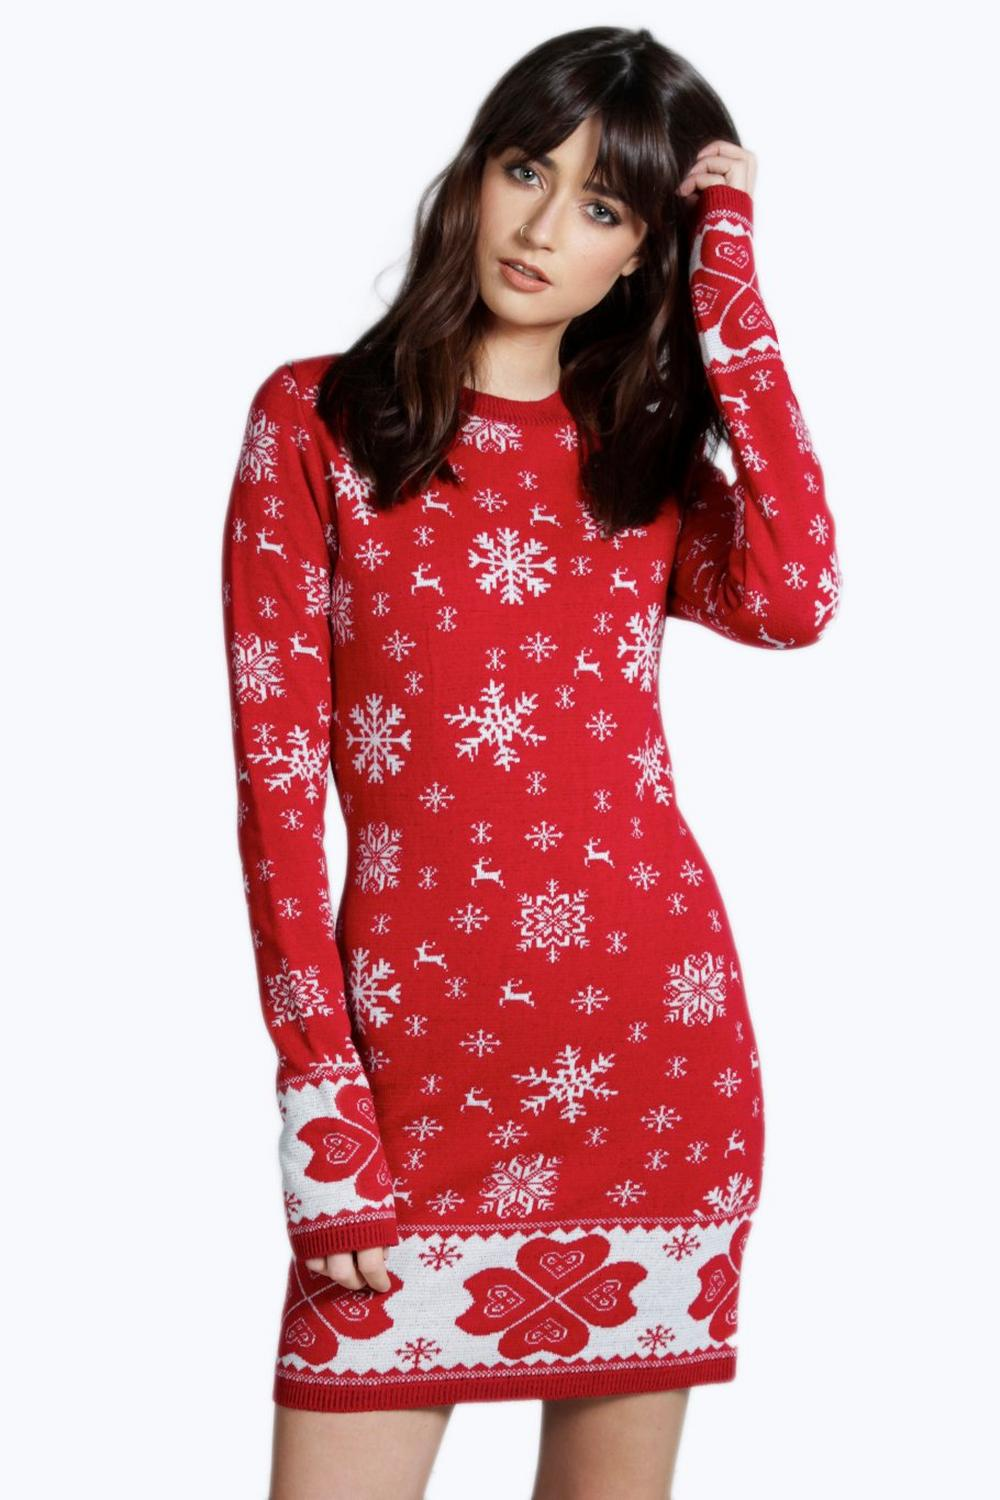 The Snowflake Jumper (also known as the Serenade Outfit) is an American Girl of Today outfit released in and retired in Retail cost was $ Contents[show] Blouse Jumper Tights Shoes Headband This section or article is a stub. You can help American Girl Wiki by expanding it. This.